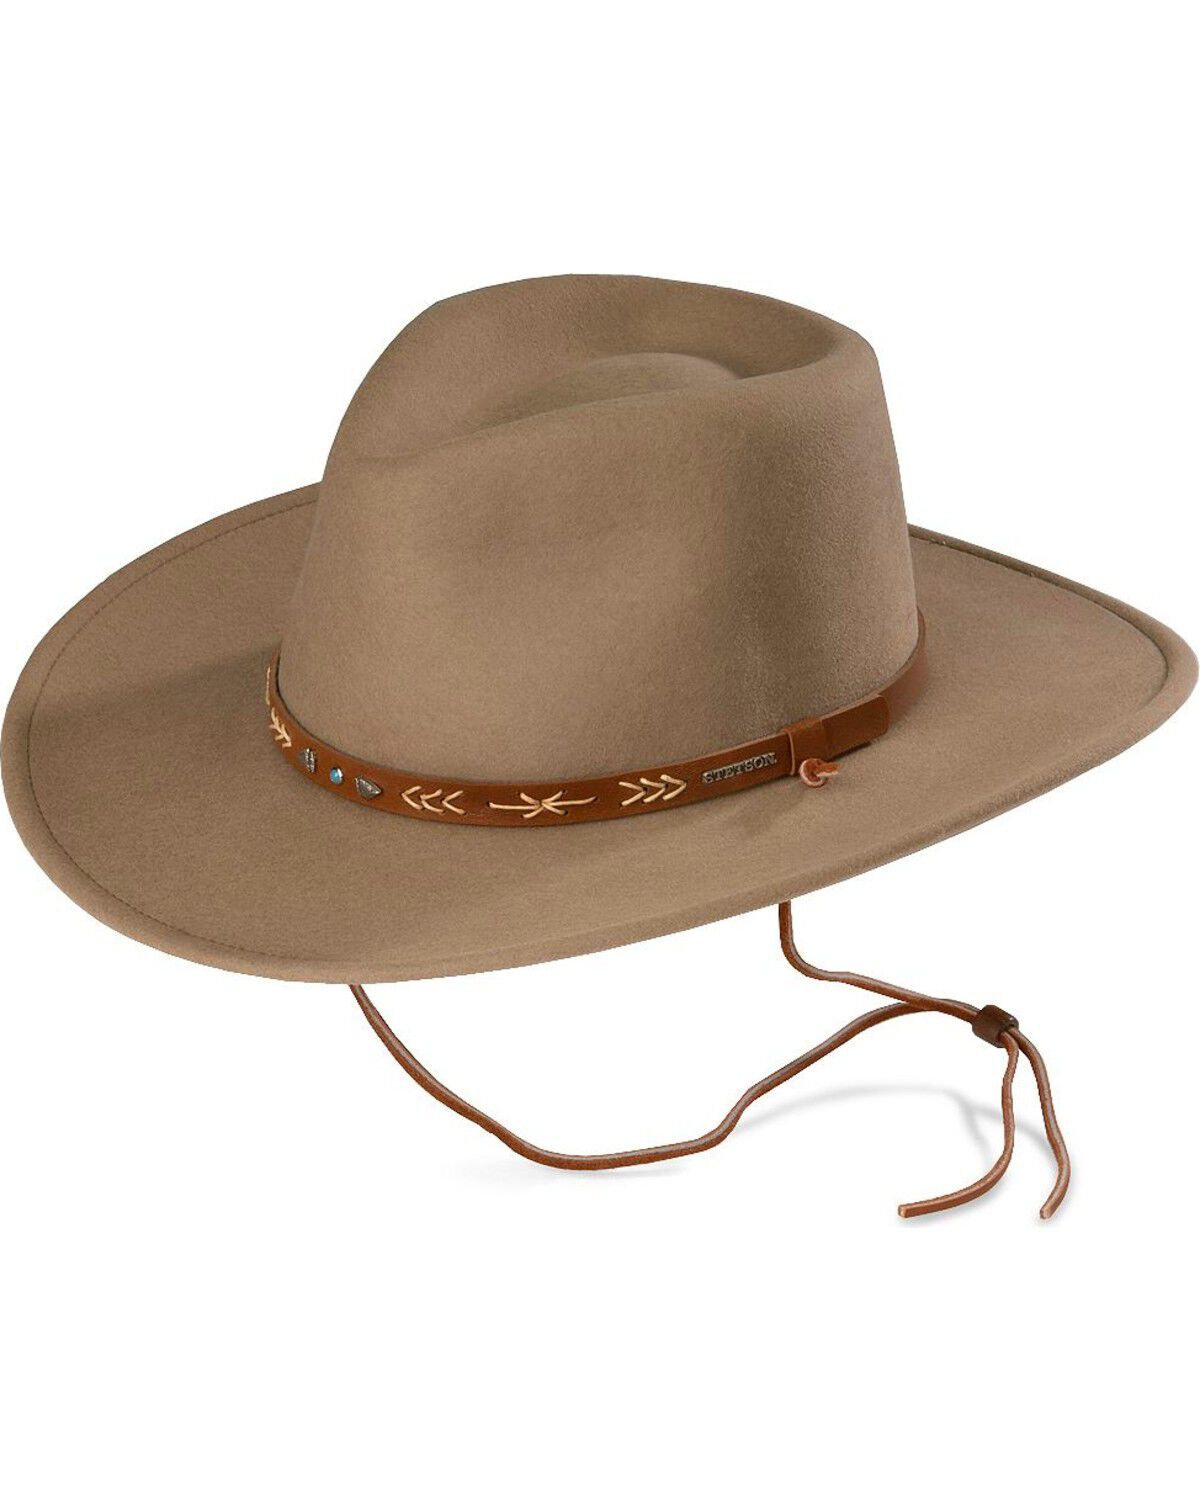 0a7abeb76 Cowboy Hats | Boot Barn